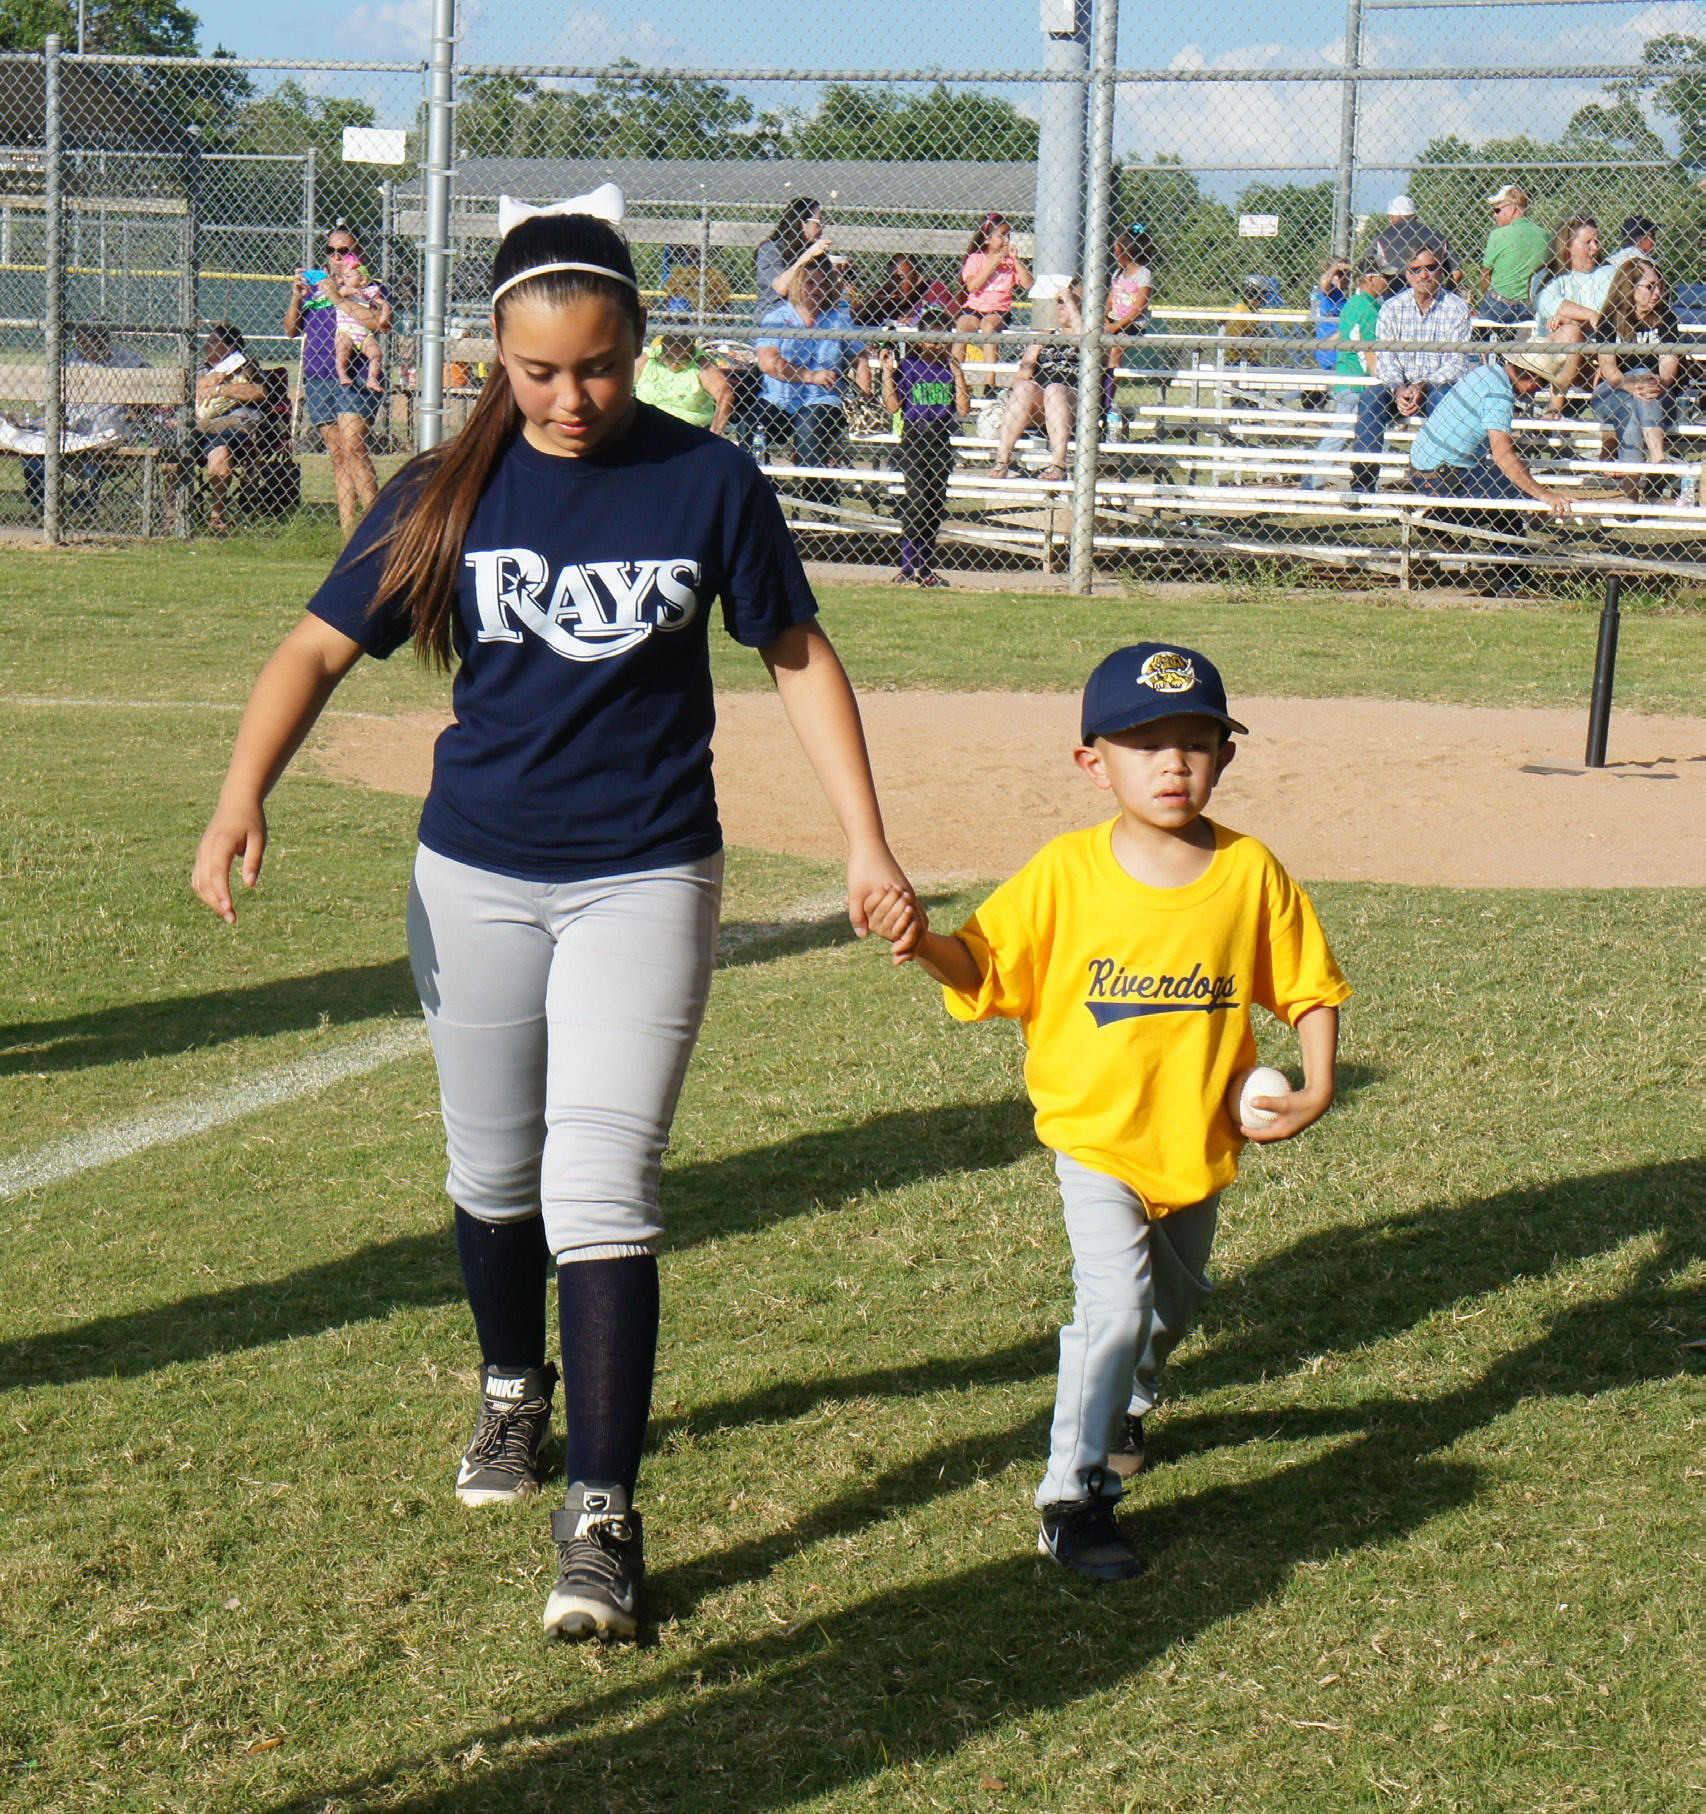 Jessie James Sandoval finishes racing around the bases with his sister, Leanna Alcorta, by his side. The 5-yearold has embroyonal rhabdomyosarcoma and had a wish to play T-ball.